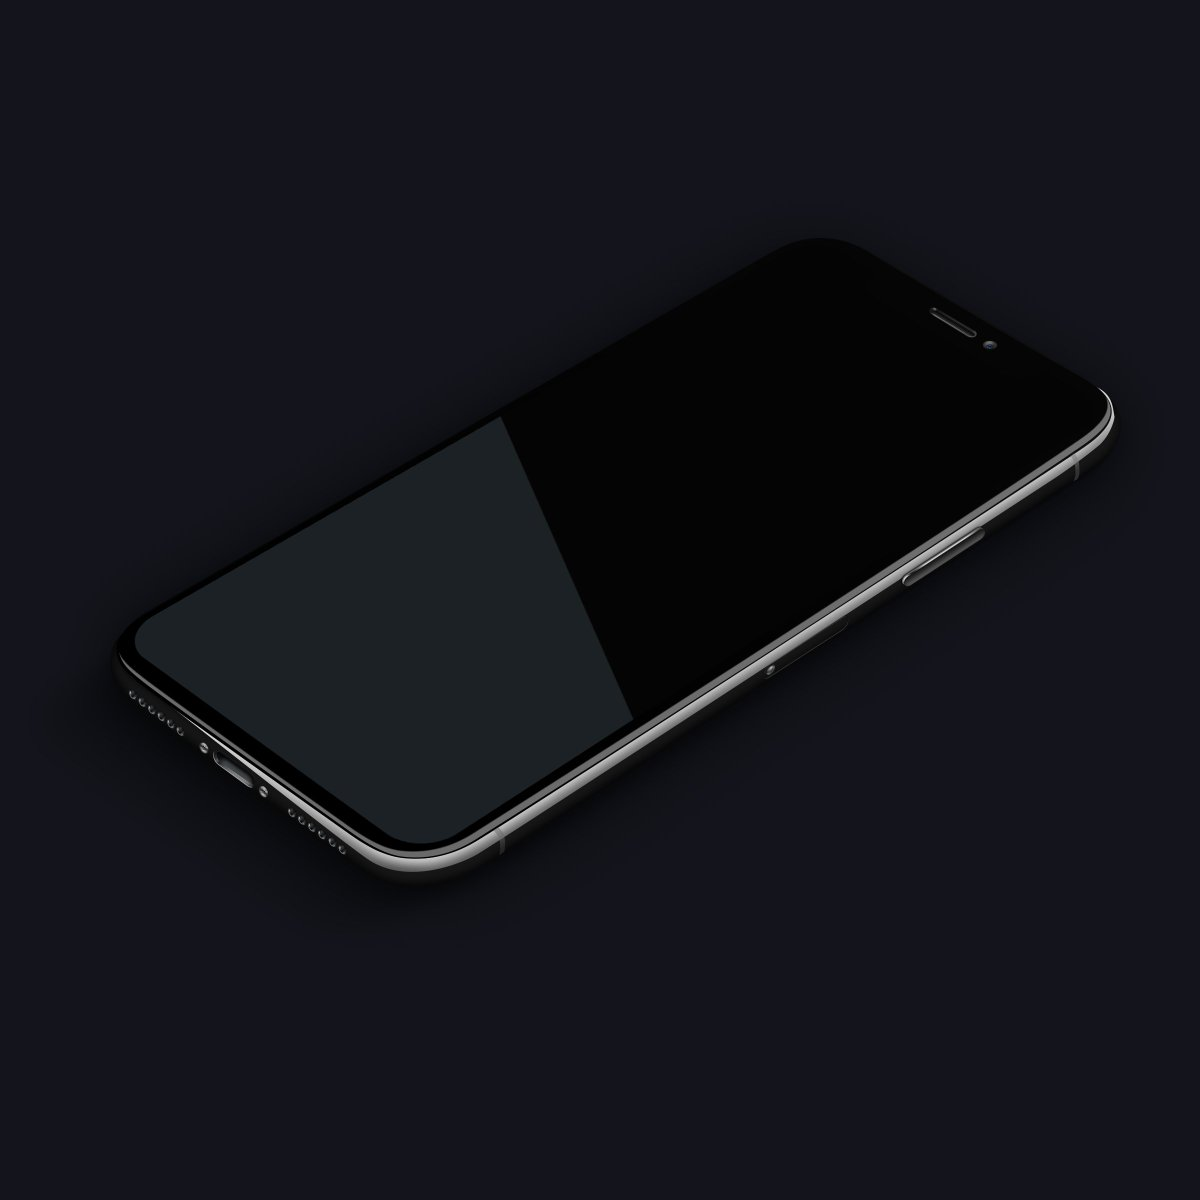 Home Screen Black Hd Wallpapers